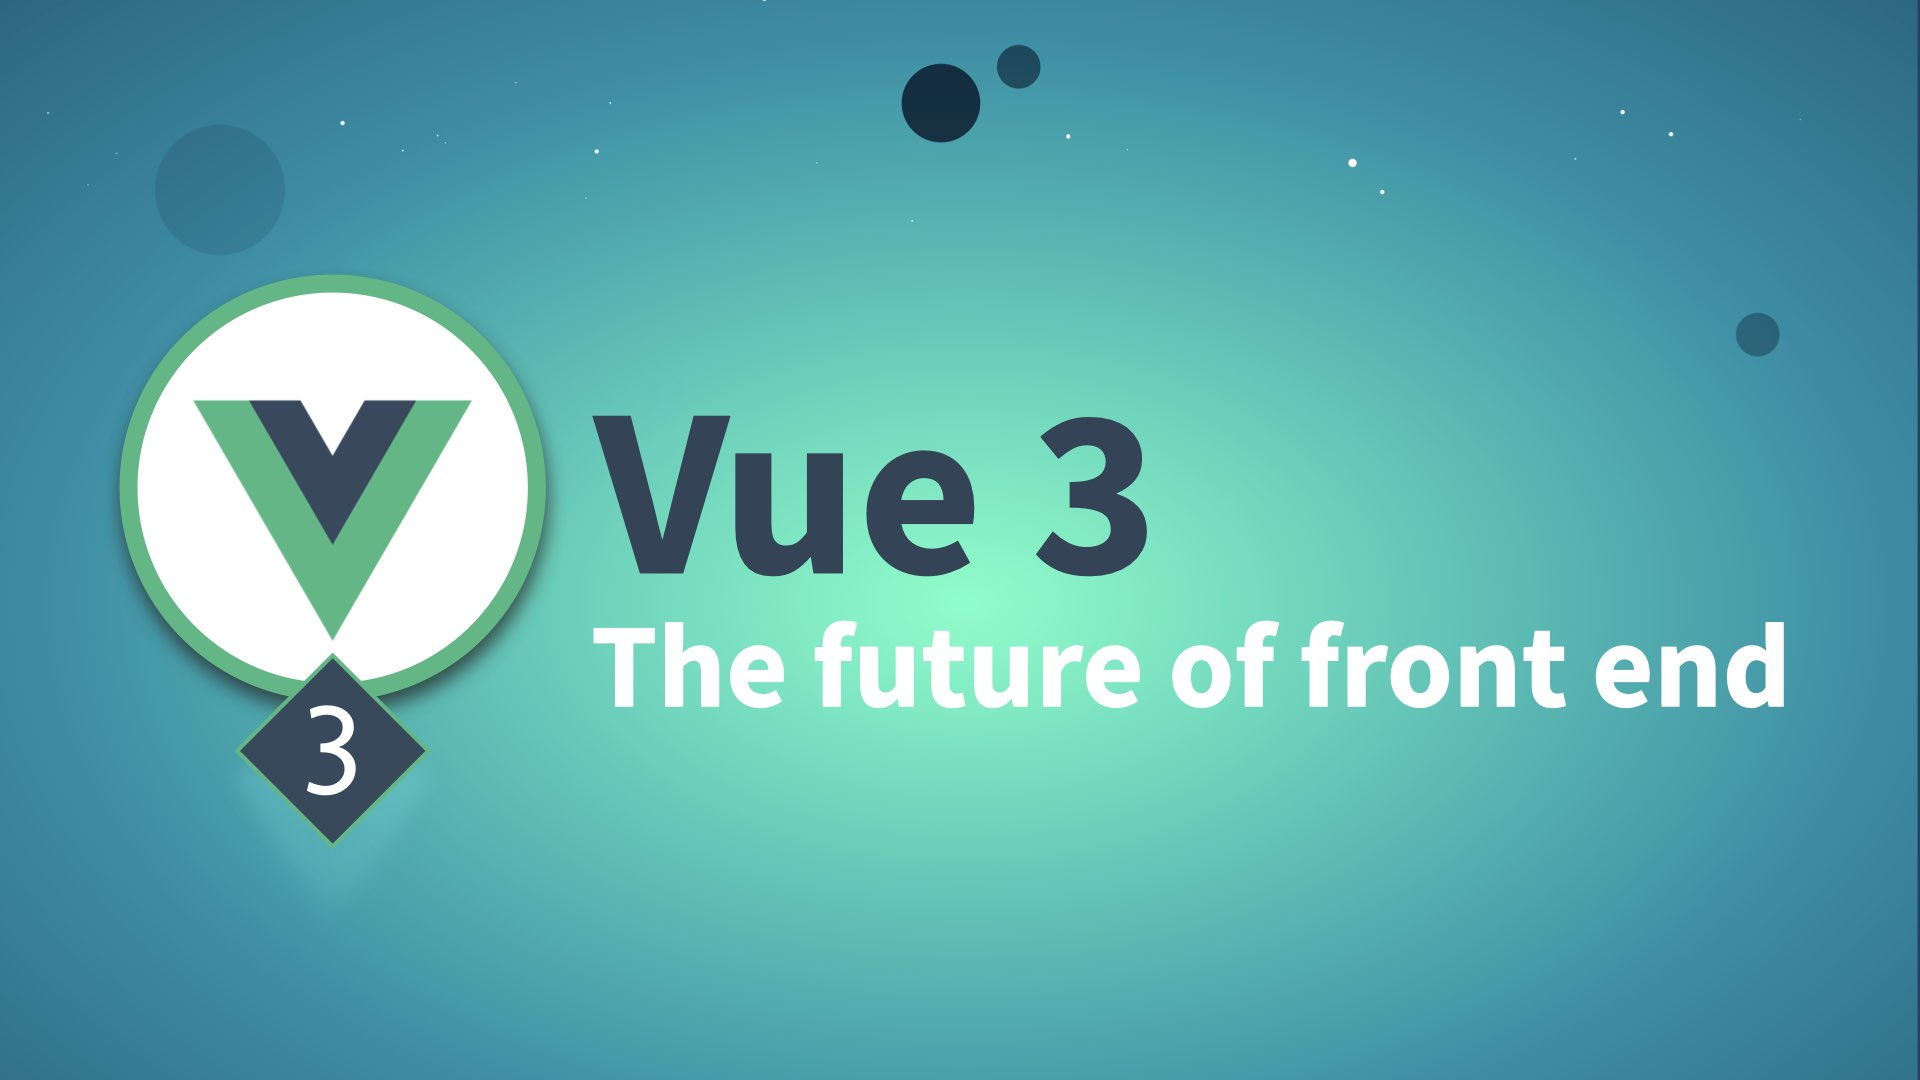 Vue 3: The Future of Front End